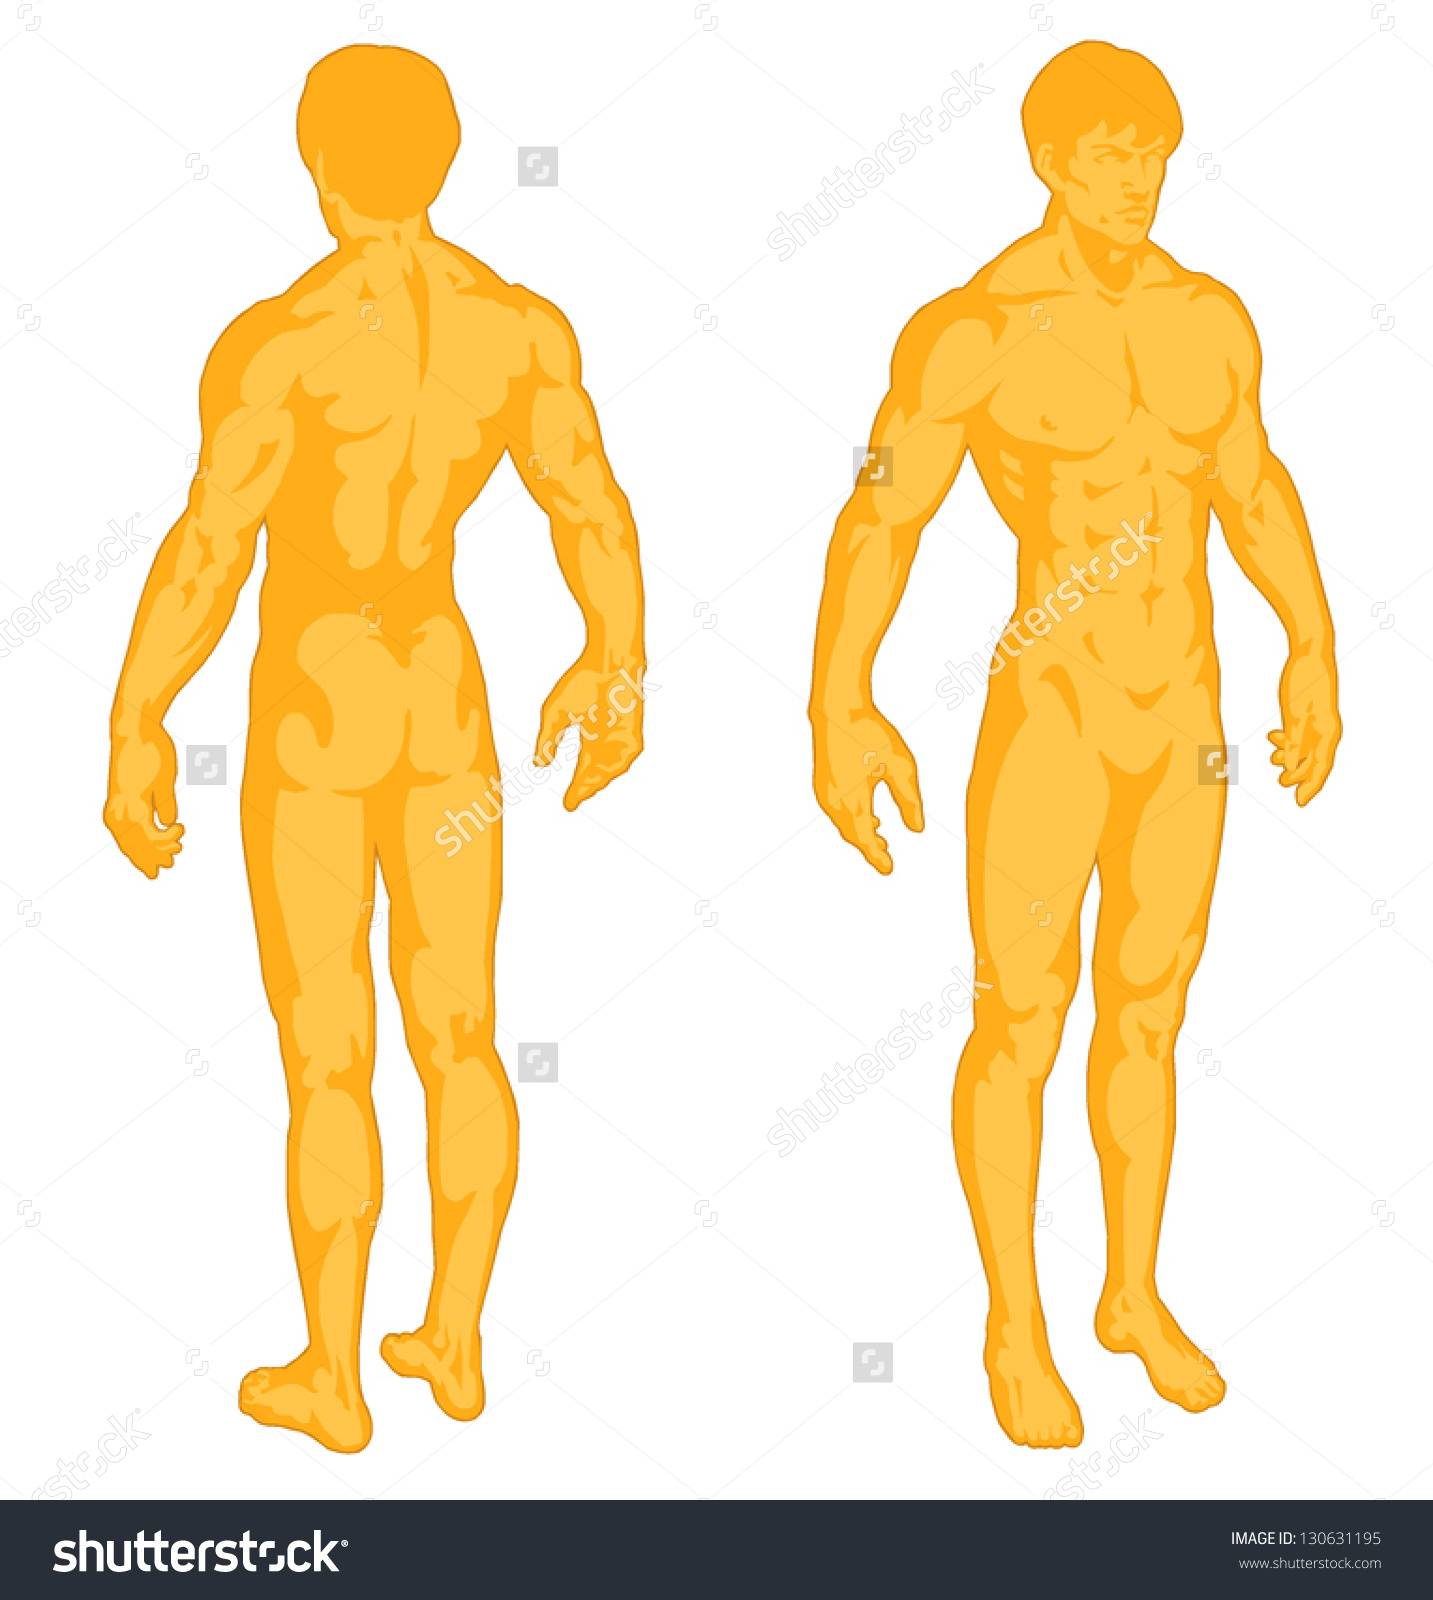 Fit human body clipart picture download Fit human body clipart - ClipartFest picture download